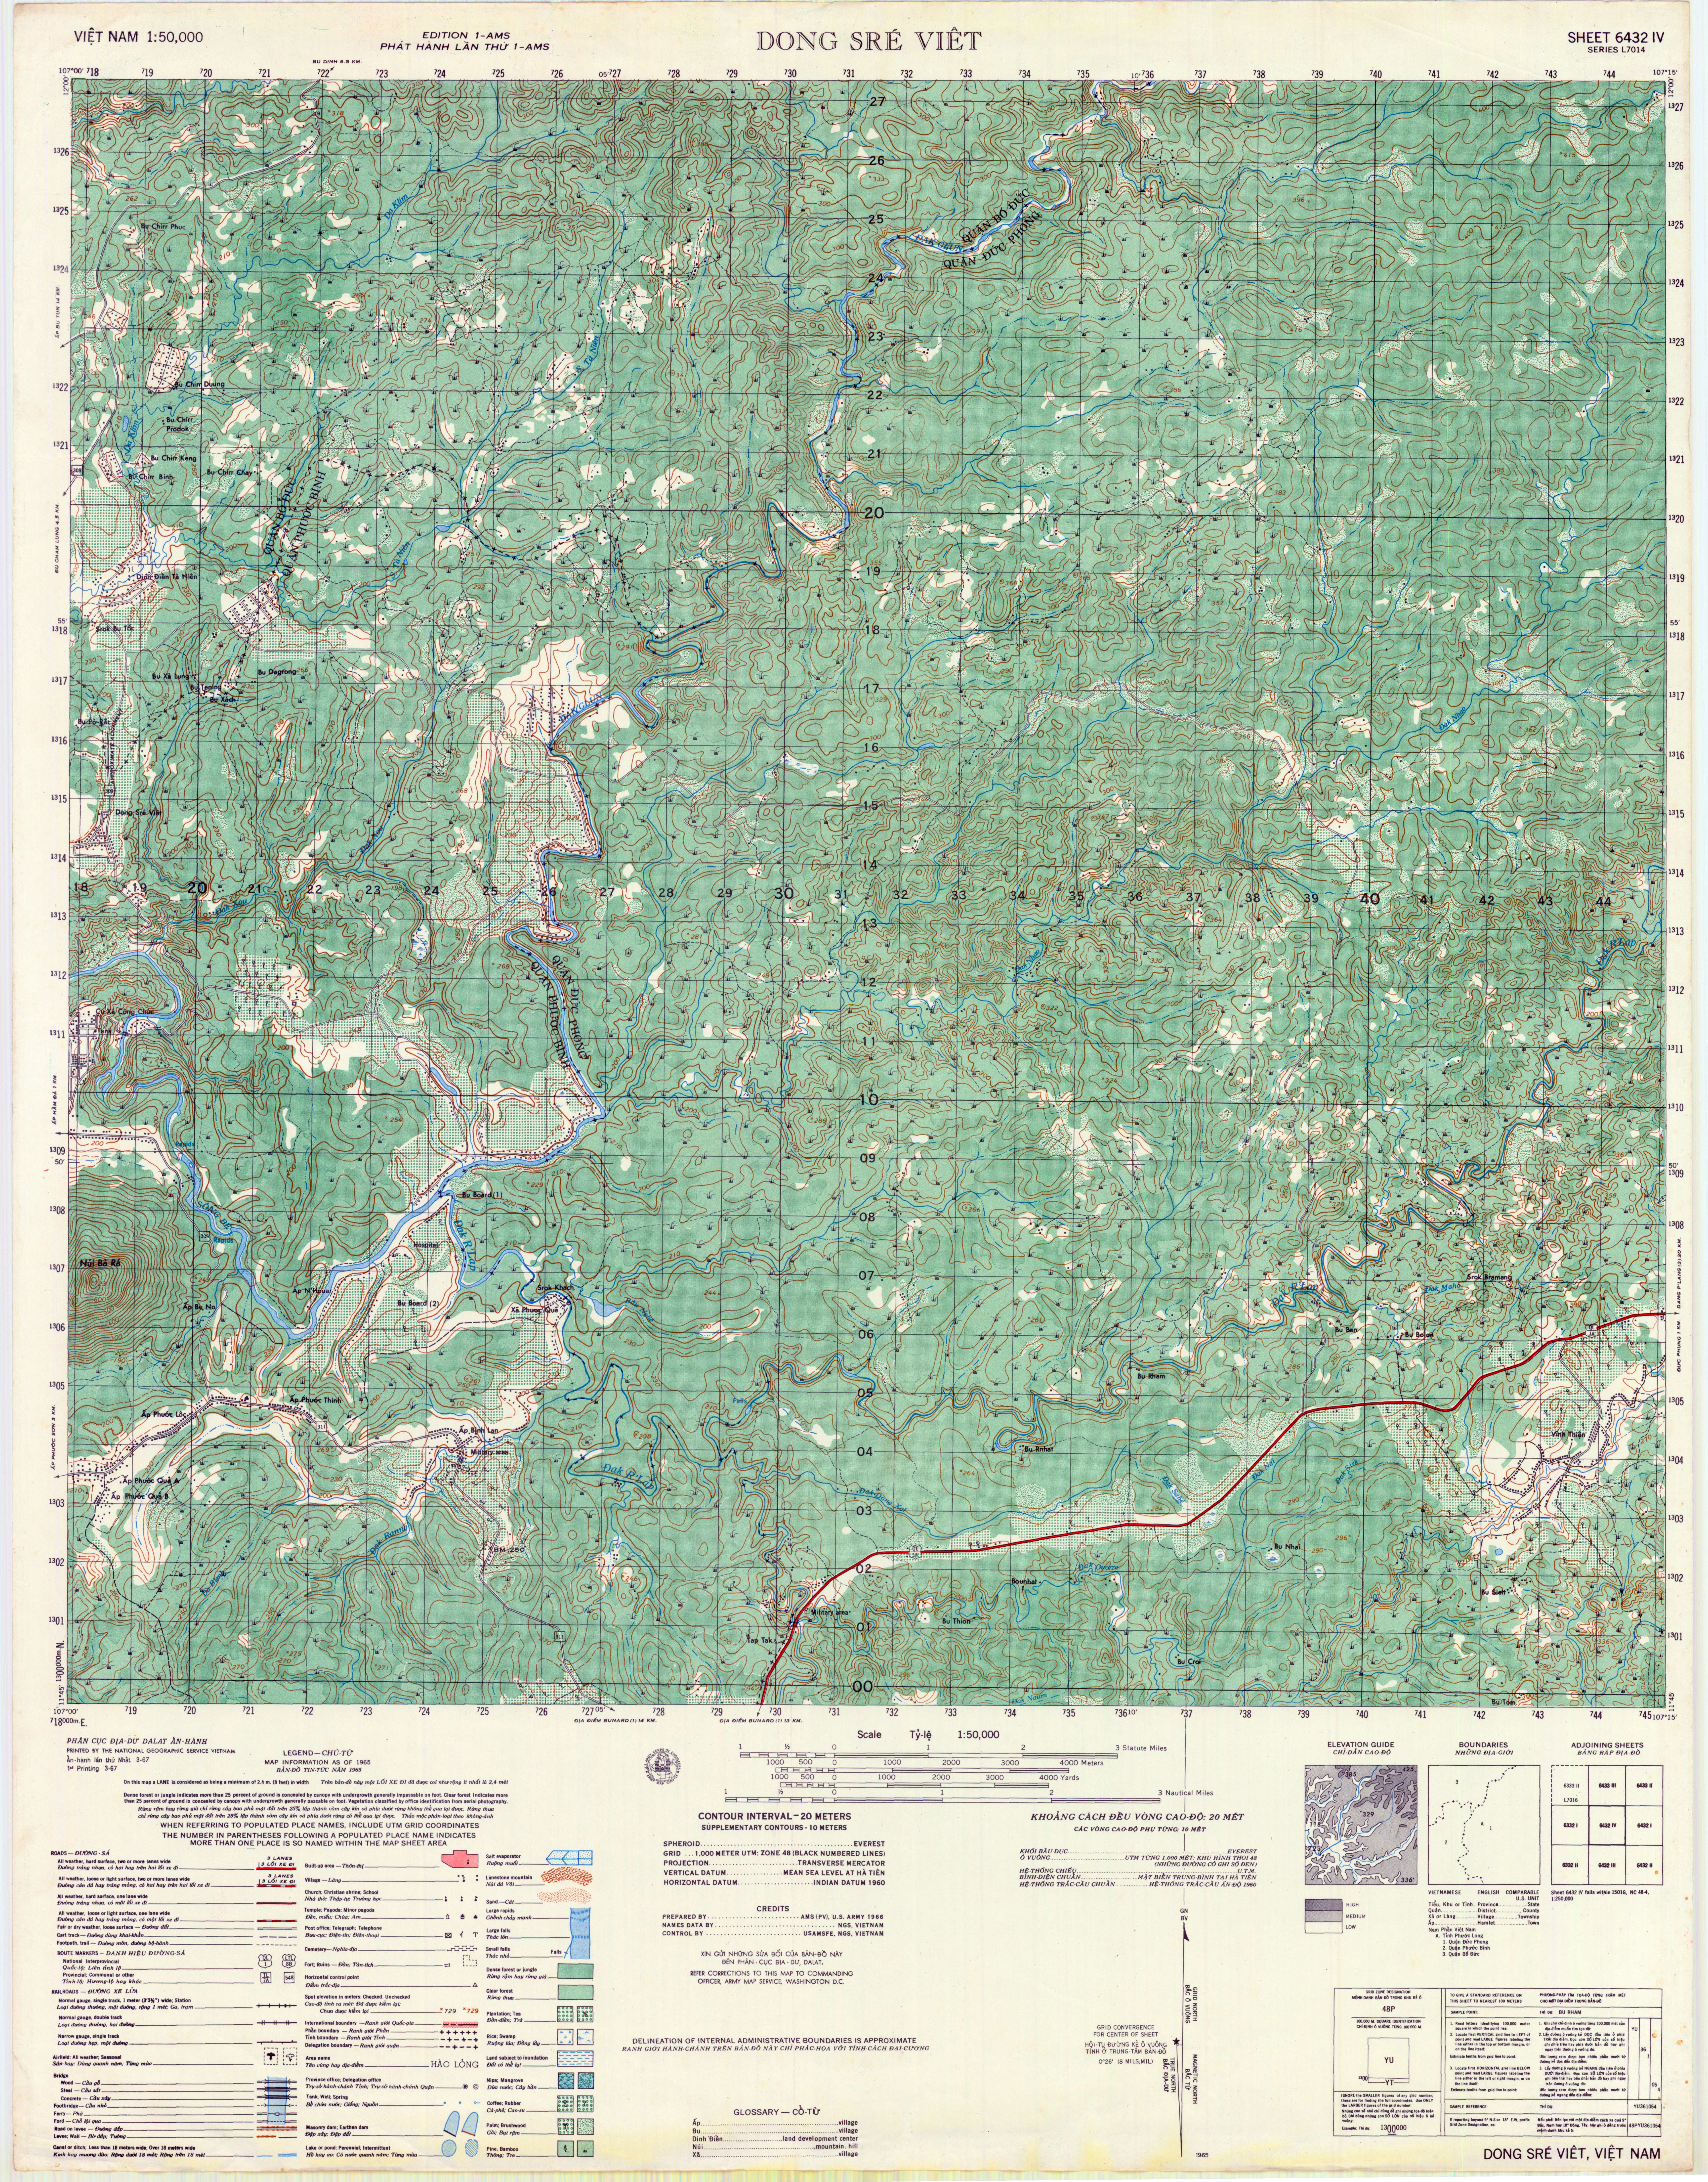 Charlie 1 506 tactical maps dong sre viet viet nam sciox Image collections